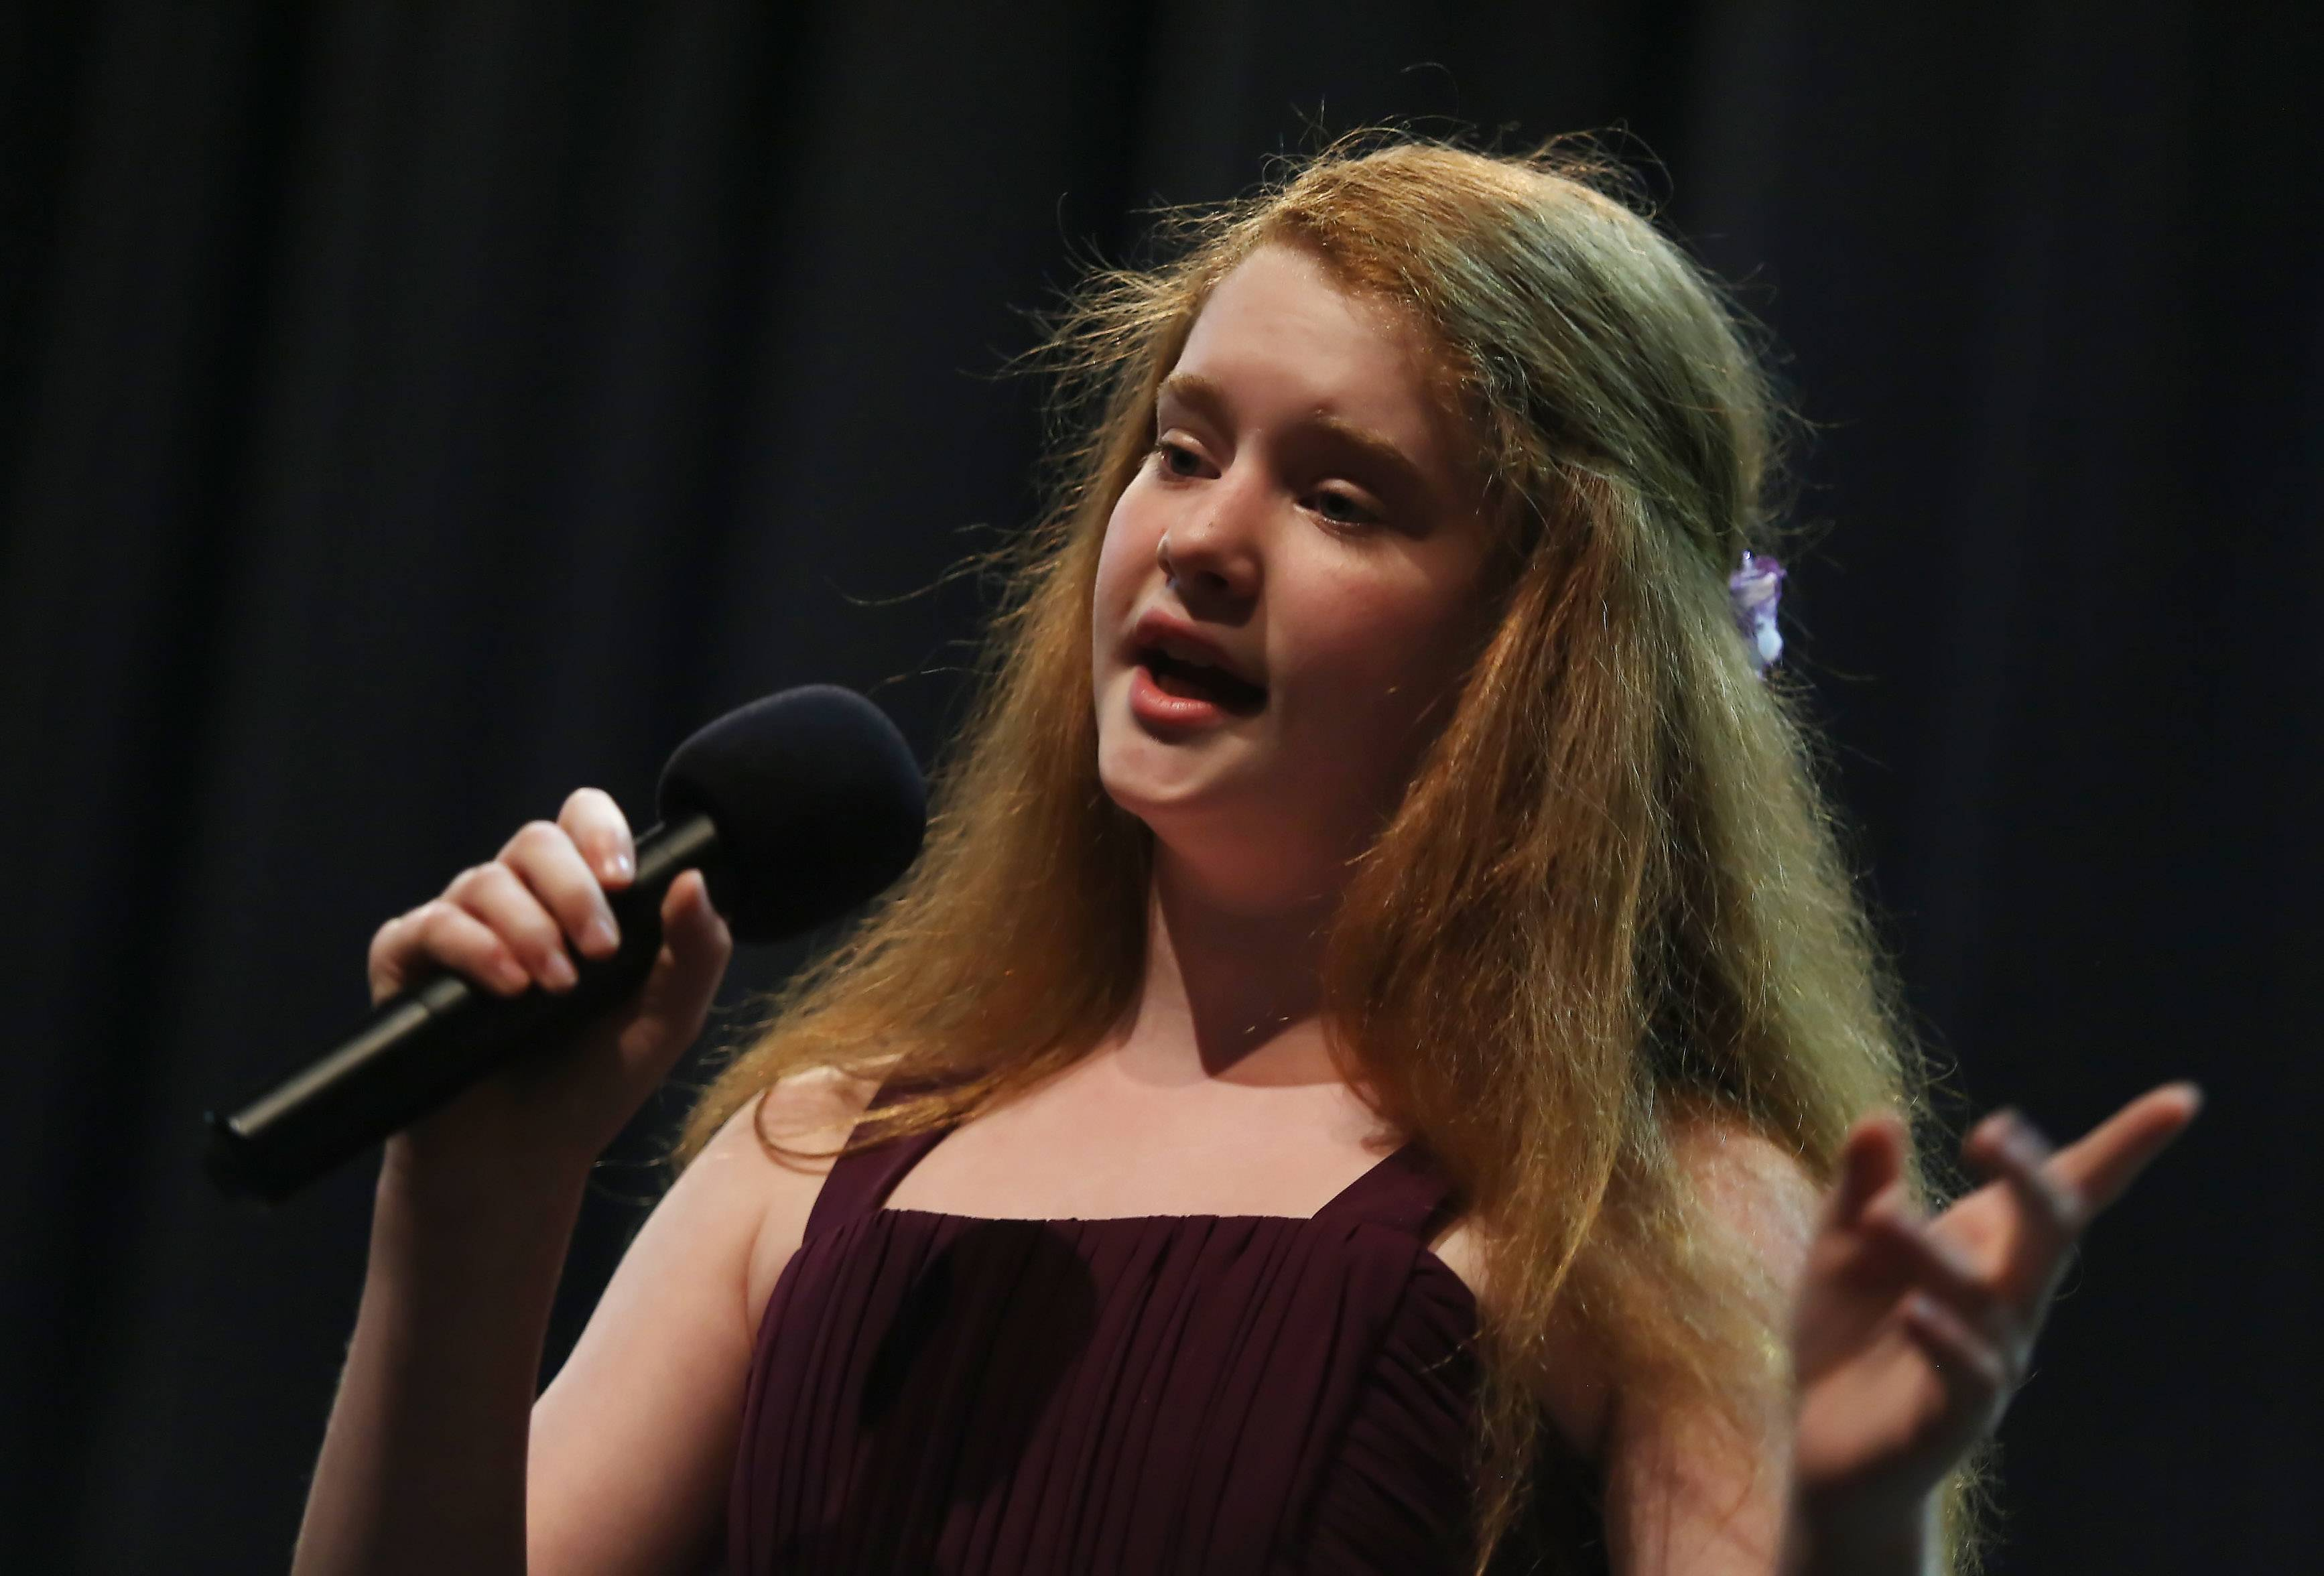 Carly Meyer, 12, performs an operatic piece Sunday at the talent show in Schaumburg.